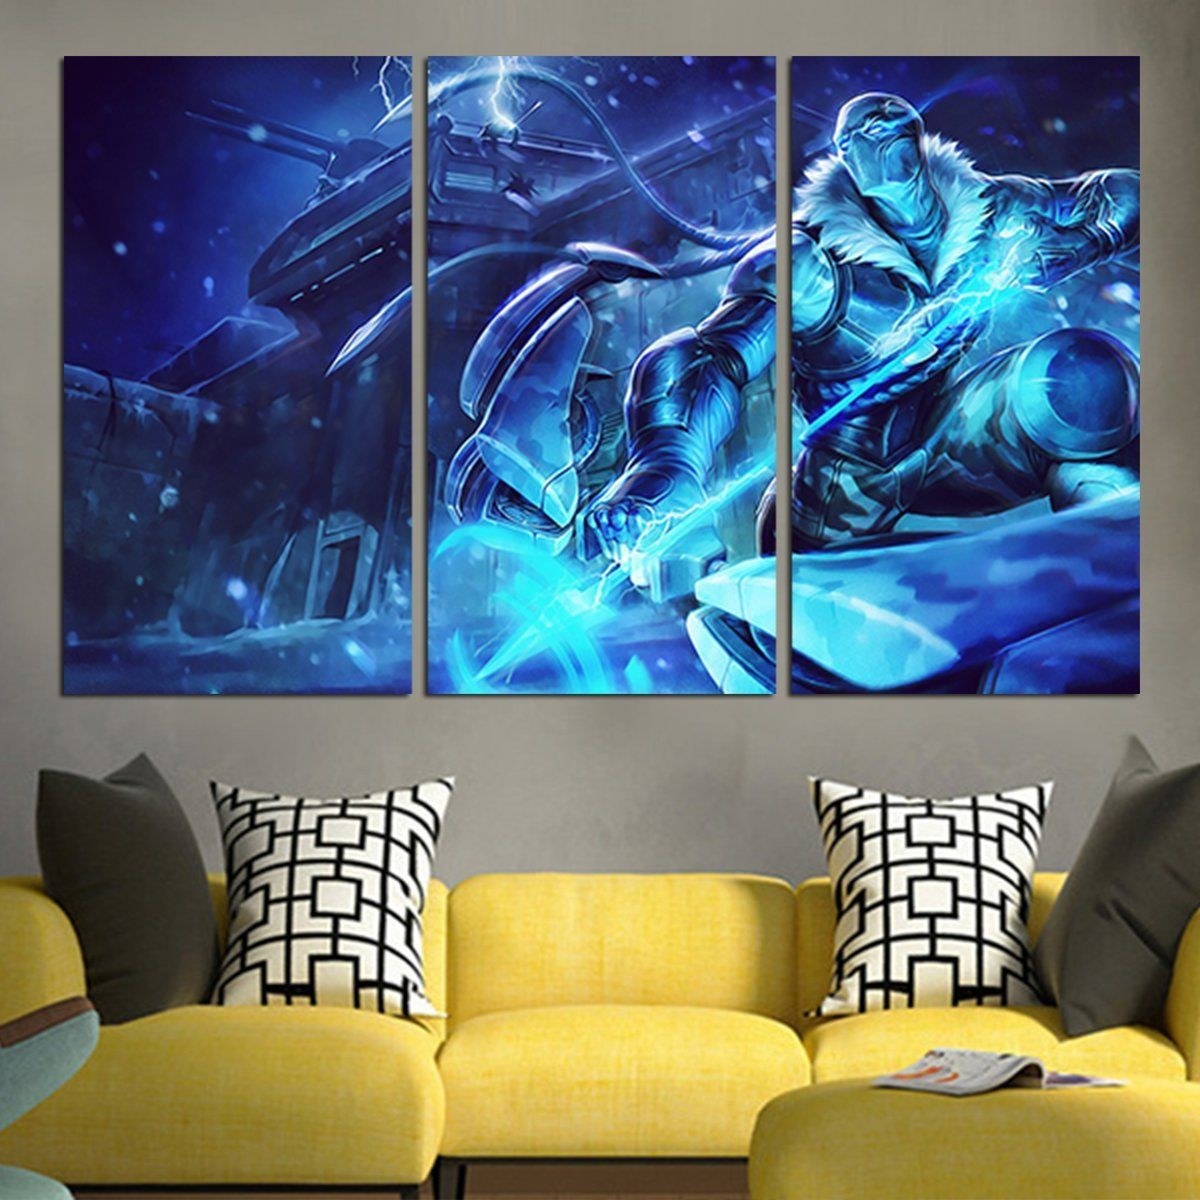 5 Pieces Hd Printing Canvas Painting League Of Legends Sona Dj Canvas Painting Painting Wall Art Canvas Prints